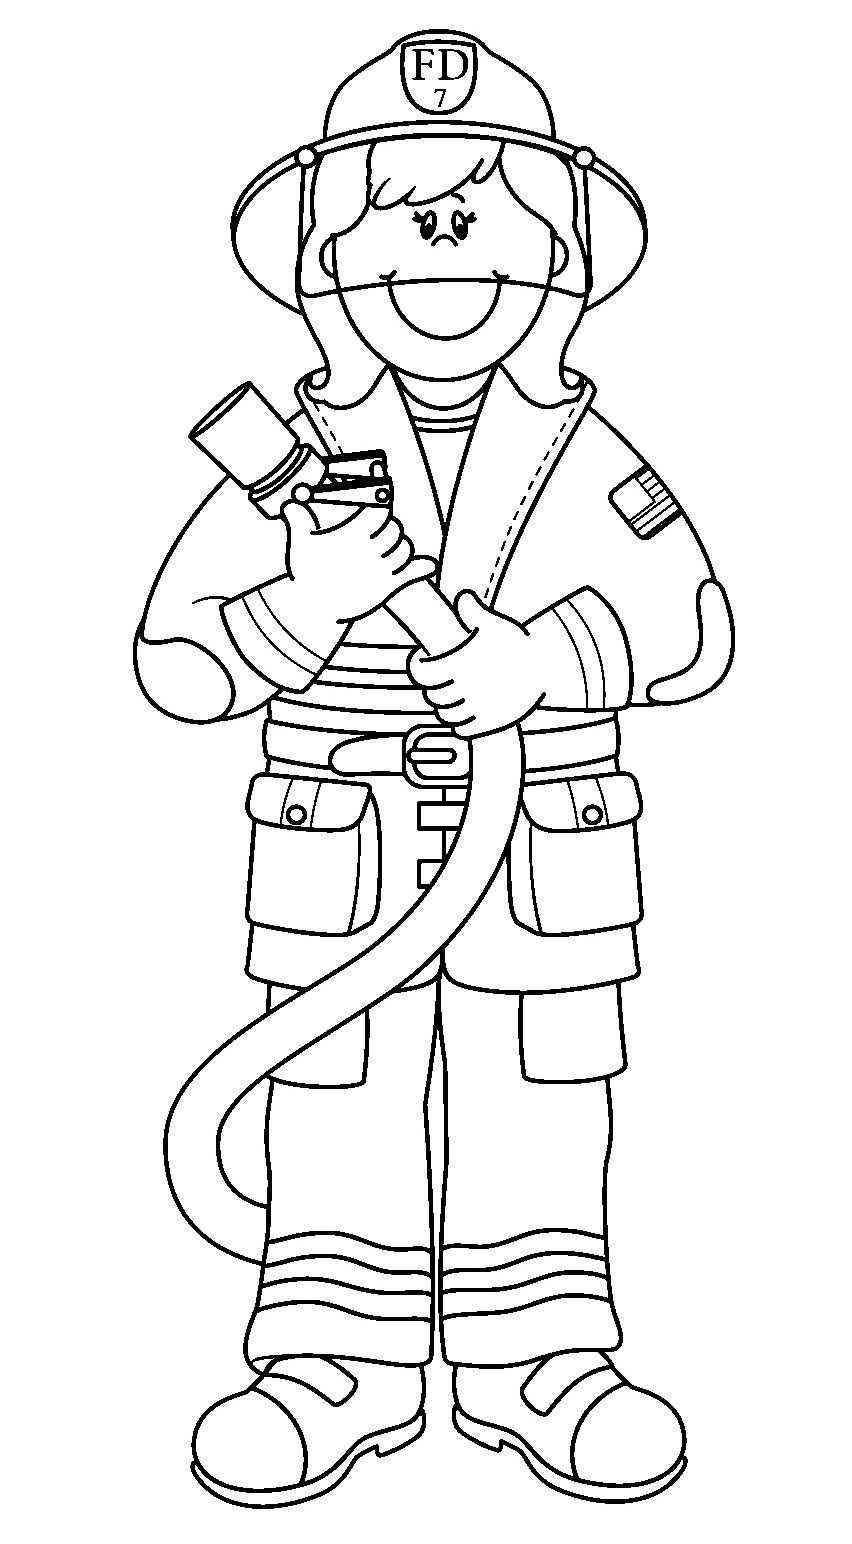 Printable Fireman Coloring Pages Printable Firefighter Coloring